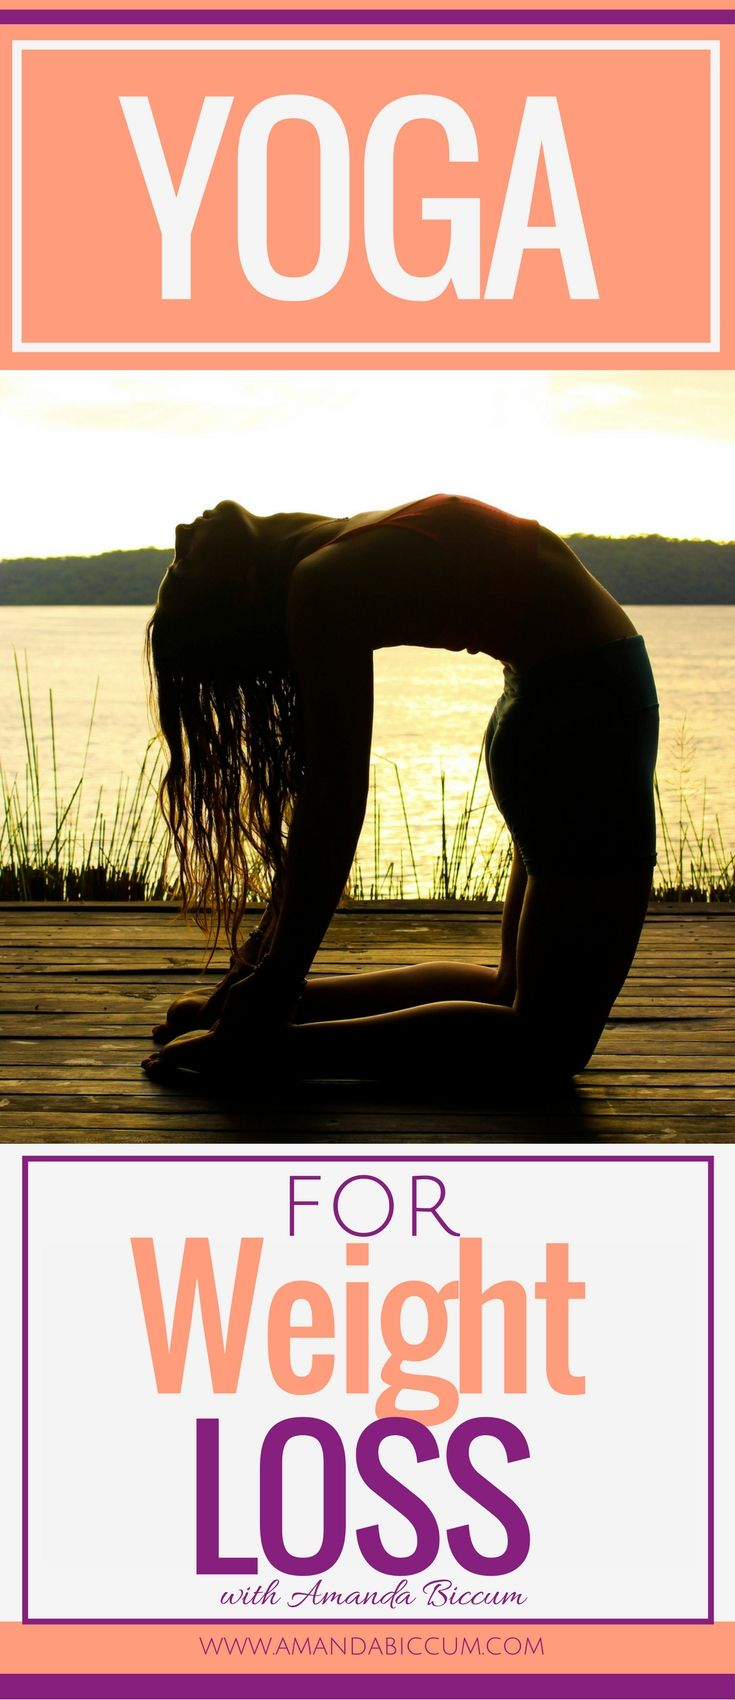 Yoga for beginners yoga for weight loss lose weight how to lose yoga for beginners yoga for weight loss lose weight how to lose weight yoga to be fit yoga to be skinny how to do yoga yoga poses to lose weight ccuart Images